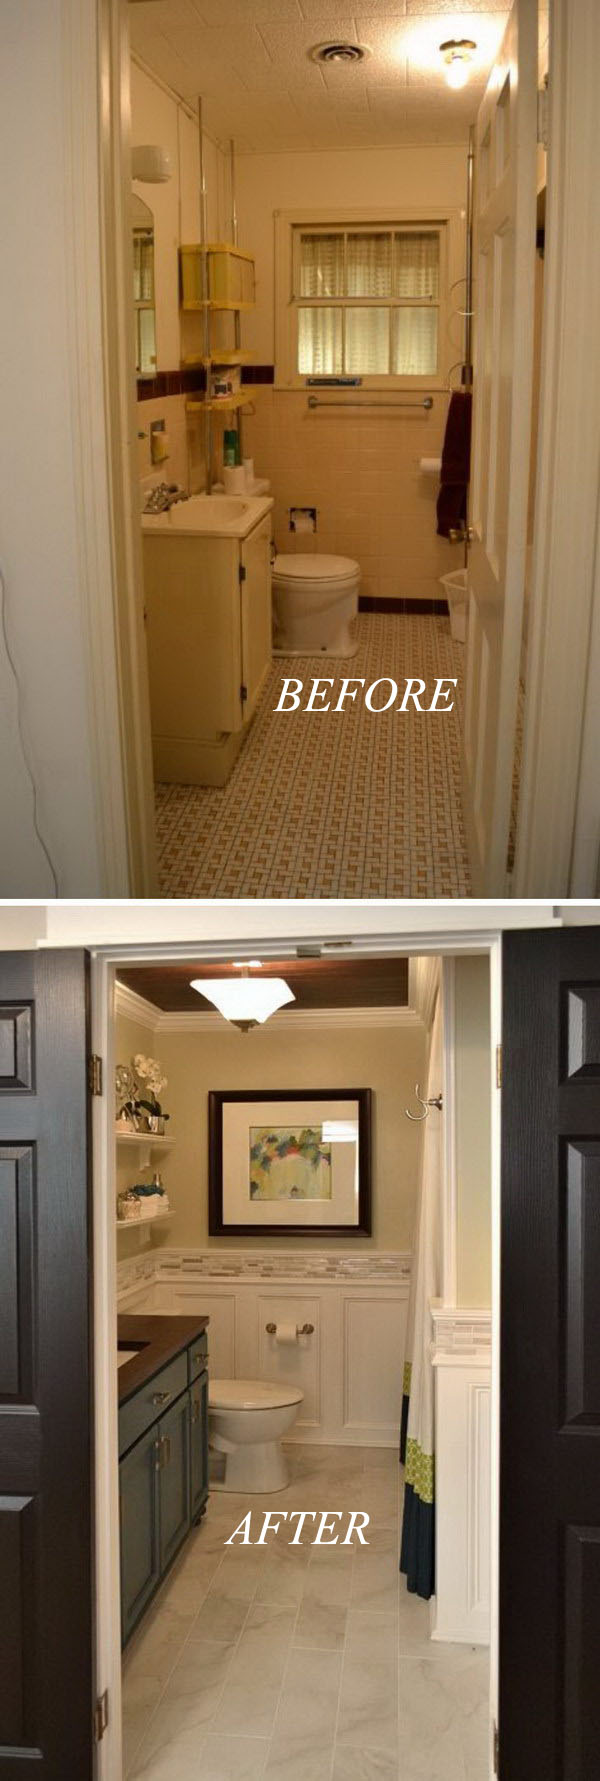 41-42-bathroom-remodel-before-and-after